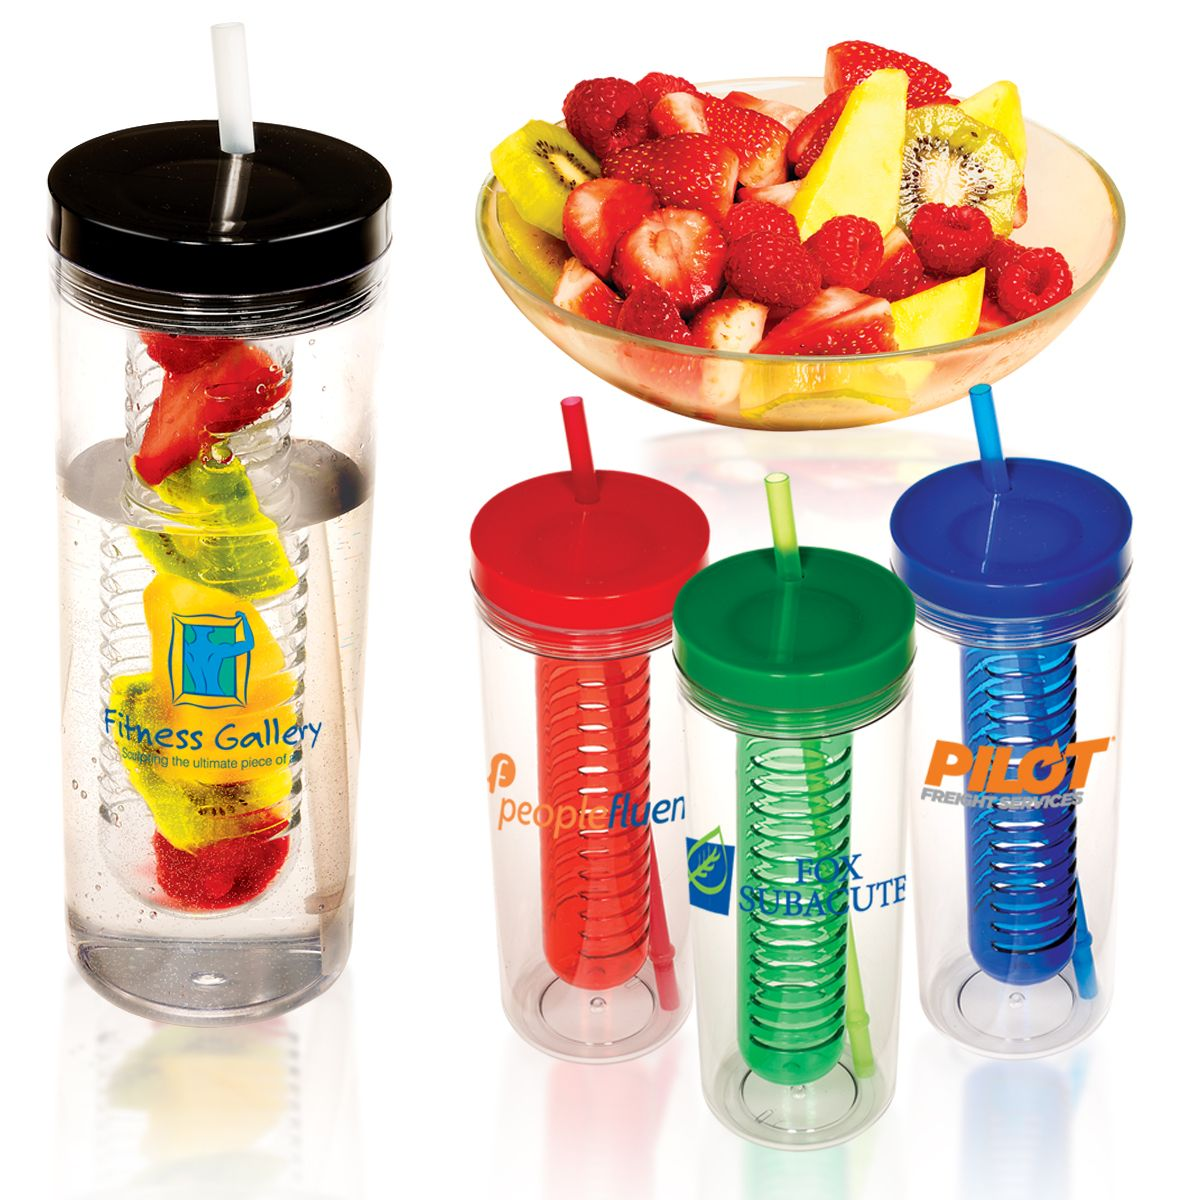 PL-4075 Thirstinator Sipper with Infuser, a Prime Line® exclusive! 20 oz. single-wall SAN acrylic tumbler with infuser and polypropylene straw. Fill infuser with fruit to flavor water  Screw-on top. Straw features molded gasket. Straw will not fall out when top is screwed on.